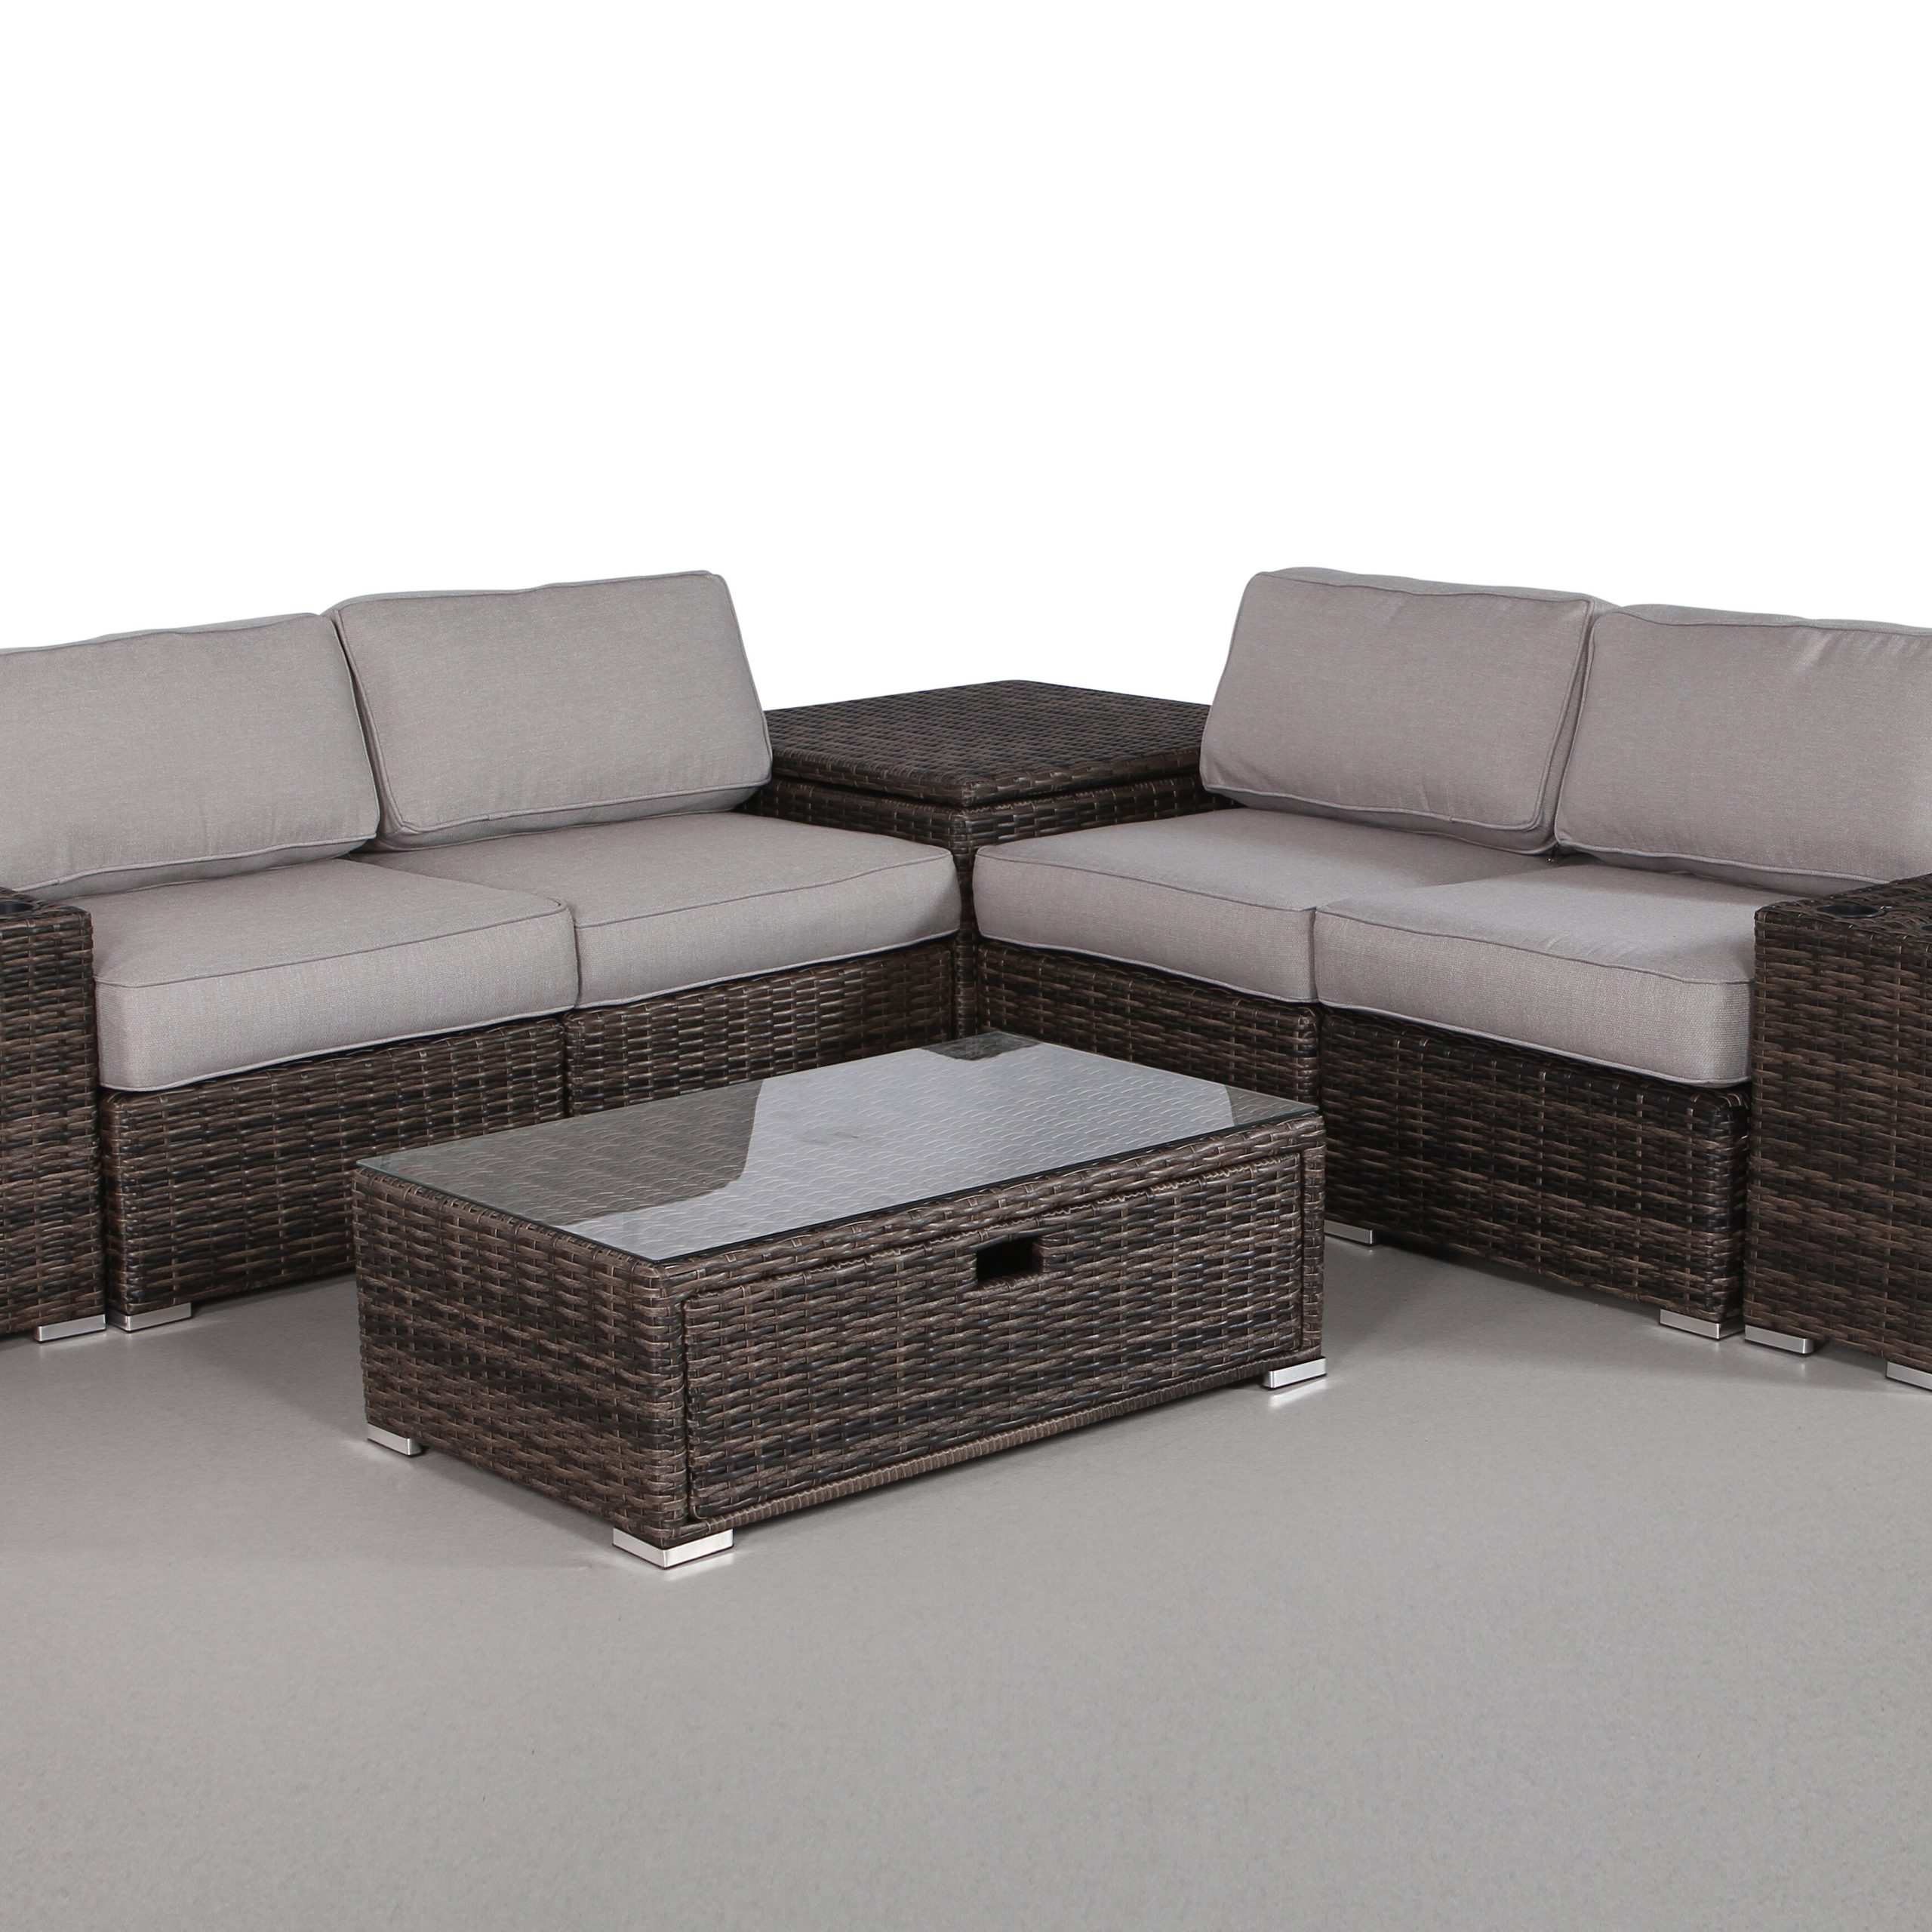 Fashionable Eldora Patio Sectionals With Cushions With Regard To Eldora 8 Piece Sectional Set With Cushions (View 4 of 25)